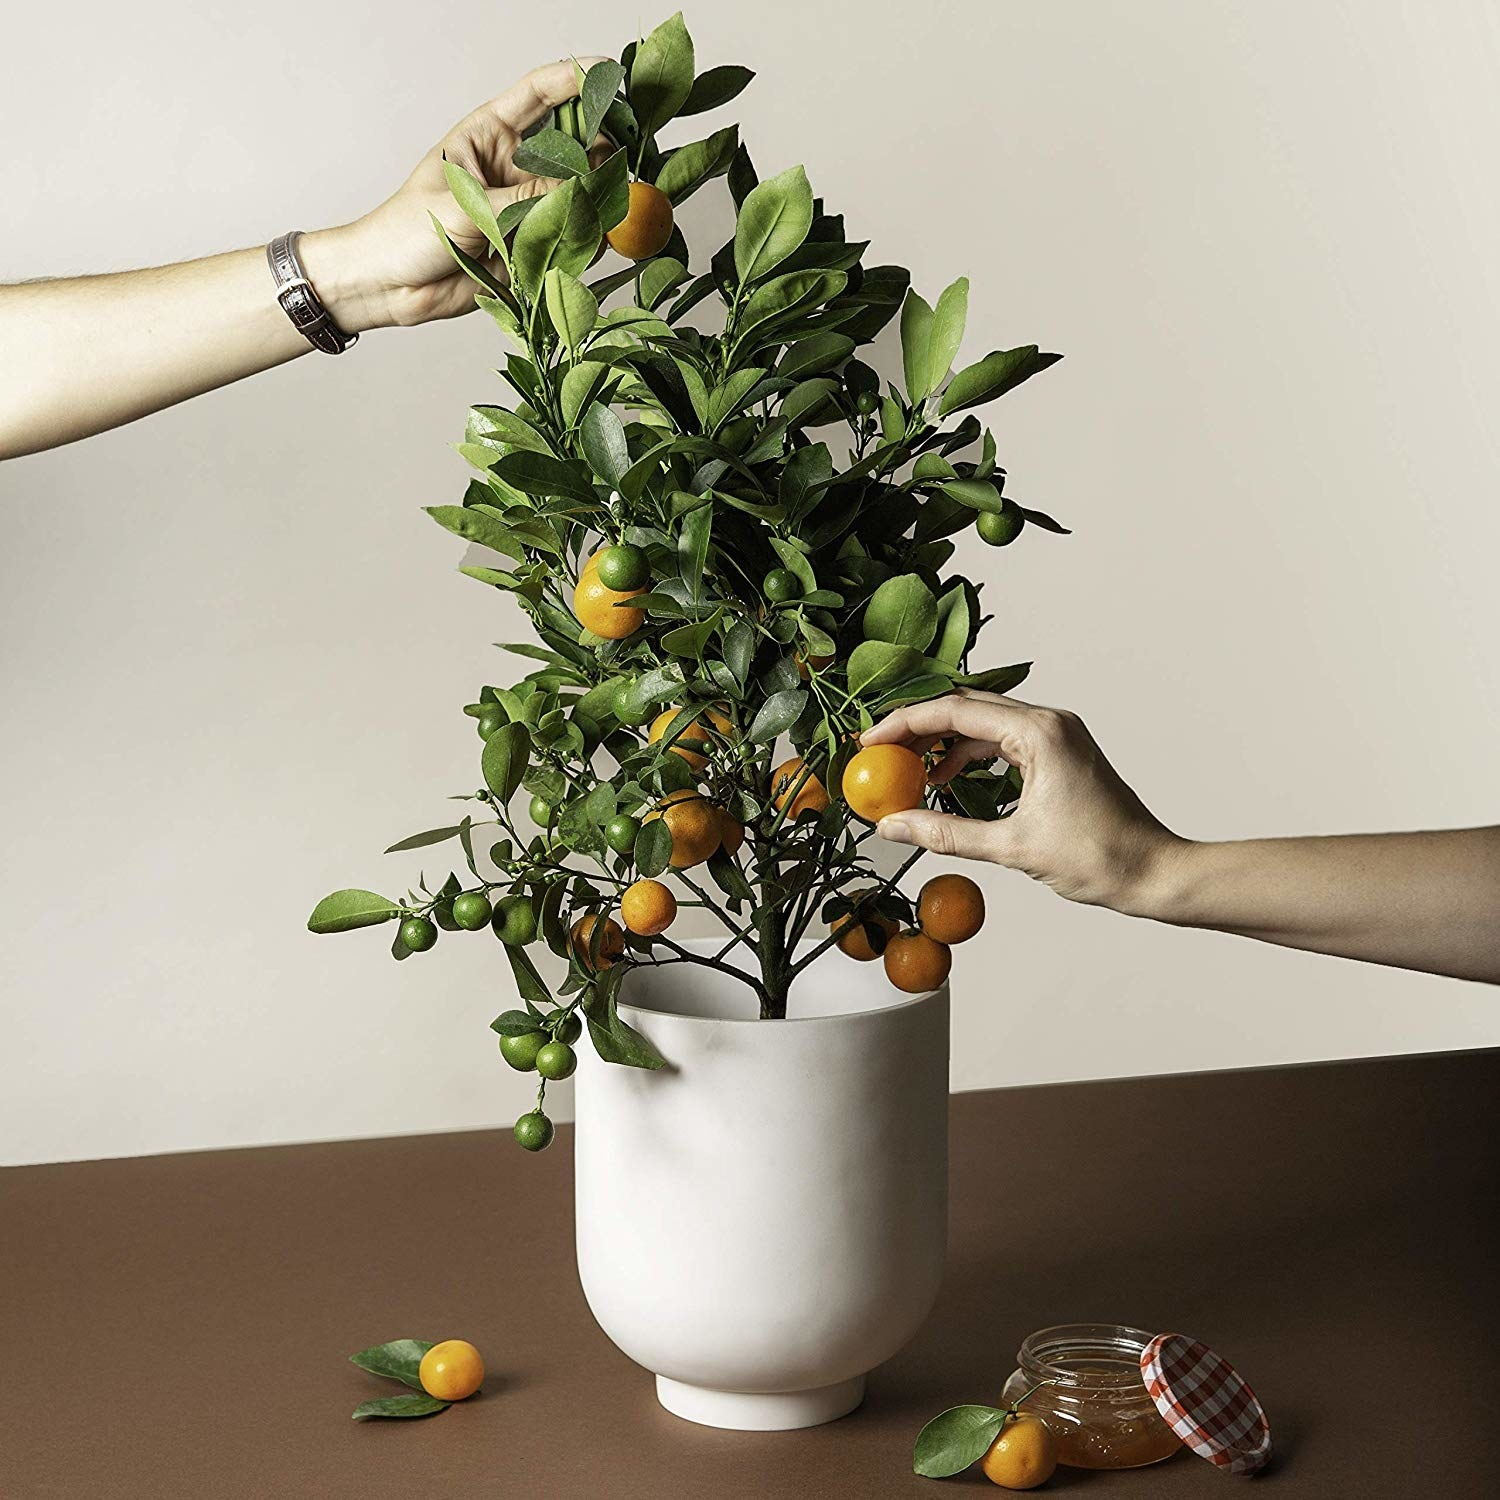 Hands picking citrus off the plant.